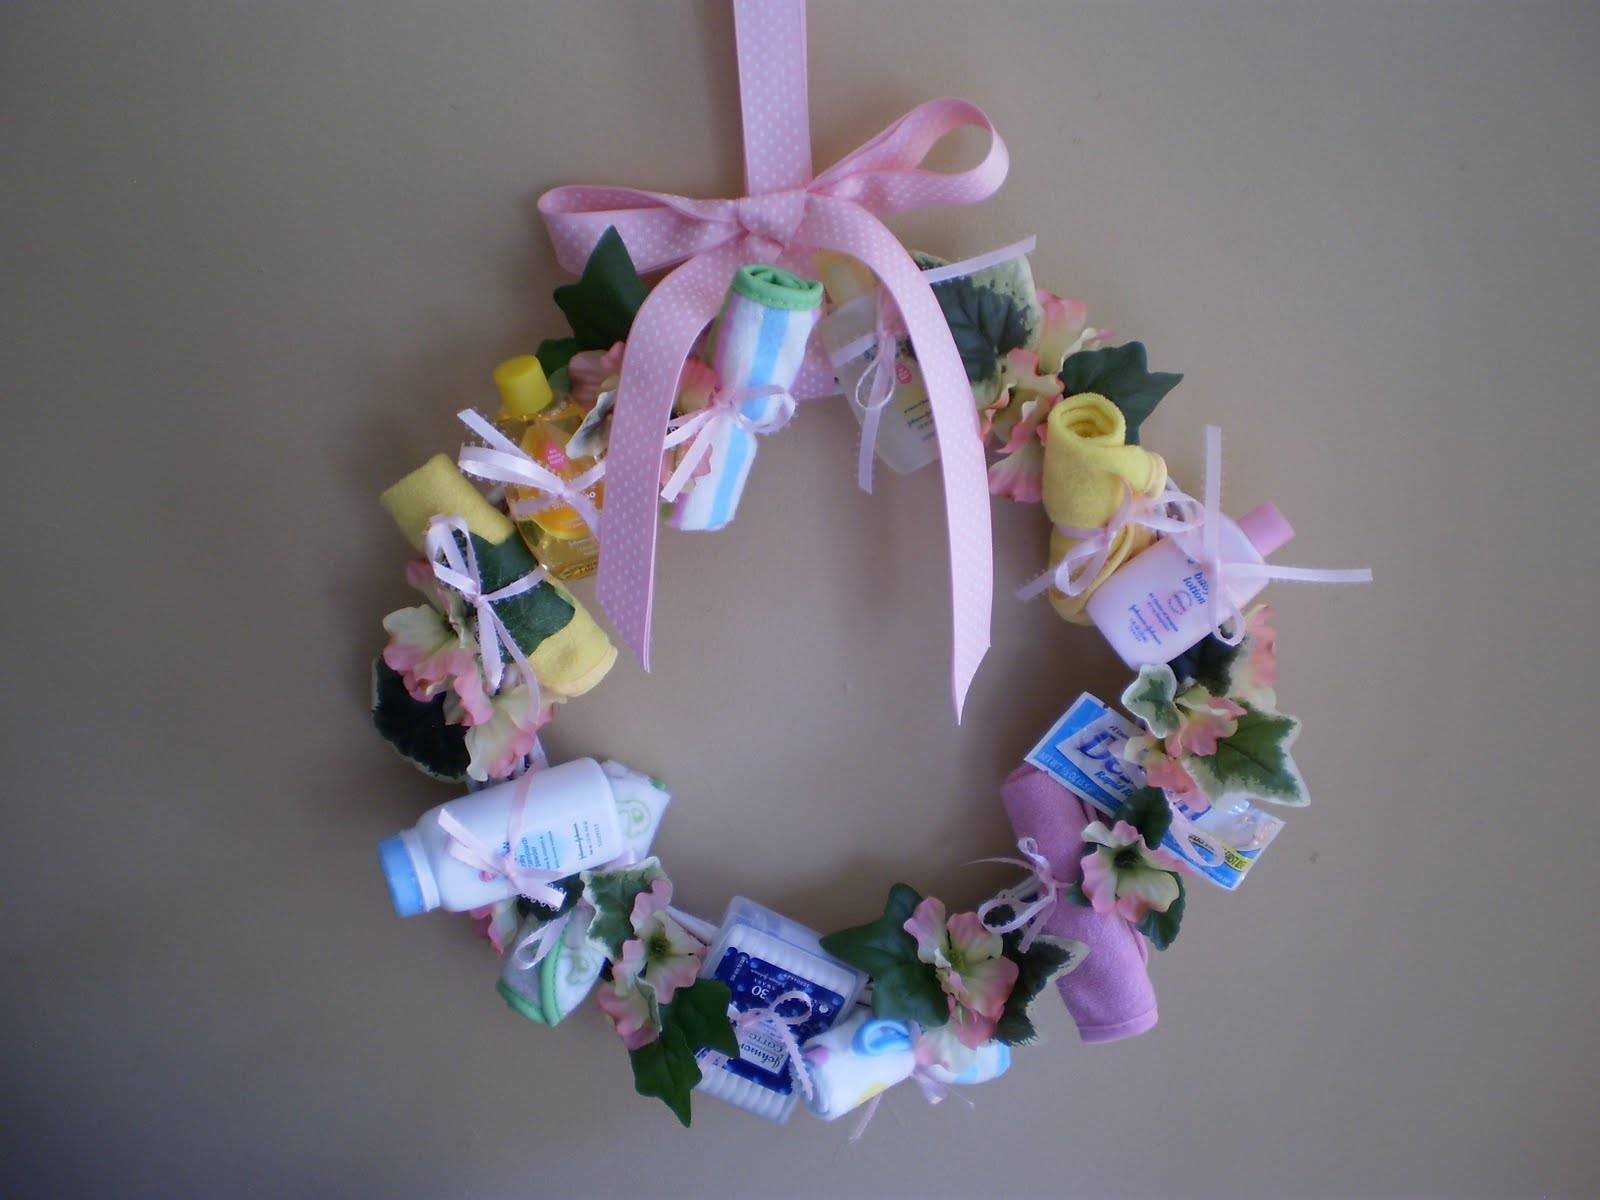 One Simple Country Girl: A Neat Baby Shower Gift Idea!